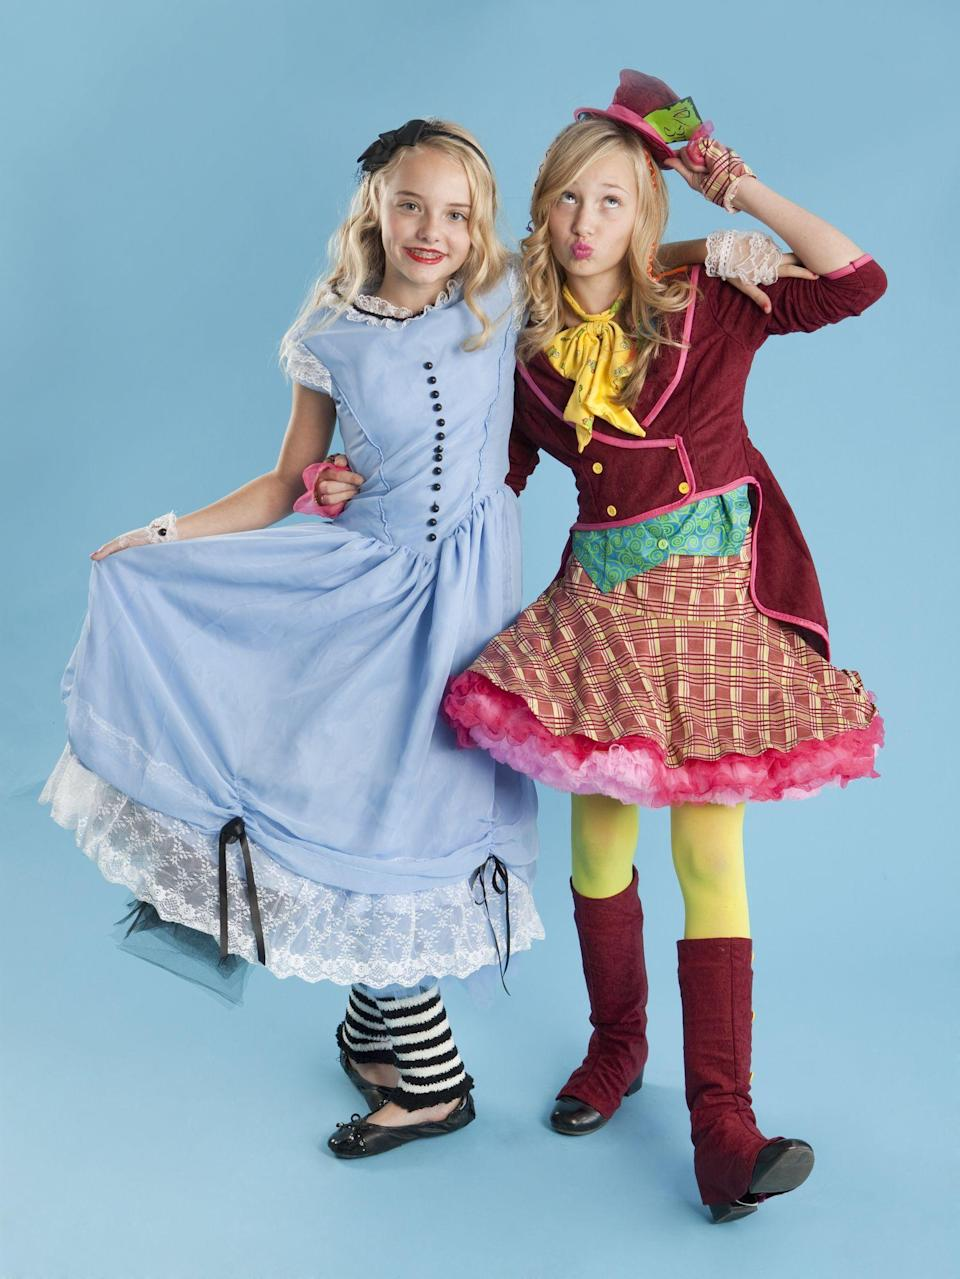 "<p>Every Halloween, do you tend to fall down the internet rabbit hole in search of next-level DIY costume ideas? Why not lean into the madness—seriously—by channeling your <a href=""https://www.countryliving.com/diy-crafts/g28594281/book-character-costumes/"" rel=""nofollow noopener"" target=""_blank"" data-ylk=""slk:book character costumes"" class=""link rapid-noclick-resp"">book character costumes</a>, in particular the enduringly popular tale <em>Alice In Wonderland? </em></p><p>Story characters range from cute to quirky to a little bit spooky, so there really is a Halloween costume idea for everyone, from <a href=""https://www.countryliving.com/diy-crafts/g21603260/diy-halloween-costumes-for-tweens/"" rel=""nofollow noopener"" target=""_blank"" data-ylk=""slk:Halloween costumes for tweens"" class=""link rapid-noclick-resp"">Halloween costumes for tweens</a> to <a href=""https://www.countryliving.com/diy-crafts/a22142517/diy-mens-halloween-costumes/"" rel=""nofollow noopener"" target=""_blank"" data-ylk=""slk:DIY men's Halloween costumes"" class=""link rapid-noclick-resp"">DIY men's Halloween costumes</a>. In that spirit, we rounded up these DIY <em>Alice In Wonderland</em> costume ideas, including Alice herself, Queen of Hearts, the Mad Hatter, Caterpillar, and more, to get your creative juices flowing.<br><br>With skill levels ranging from simple (think basic crafting know-how) to complex (you have a sewing machine and know how to use it, right?), you'll be able to channel your favorite characters while staying within a reasonable budget. Don't forget <a href=""https://www.countryliving.com/diy-crafts/g21527022/cat-makeup-ideas/"" rel=""nofollow noopener"" target=""_blank"" data-ylk=""slk:cat makeup ideas"" class=""link rapid-noclick-resp"">cat makeup ideas</a> for your Cheshire Cat costume (so creepy!). And if you're just flat out of time (perhaps the White Rabbit is your spirit animal?), we've included a few costume ideas you can shop online right now.<br><br>Explore these <em>Alice in Wonderland</em> Halloween costume ideas to help you celebrate Halloween in a fun, whimsical way!<br></p>"